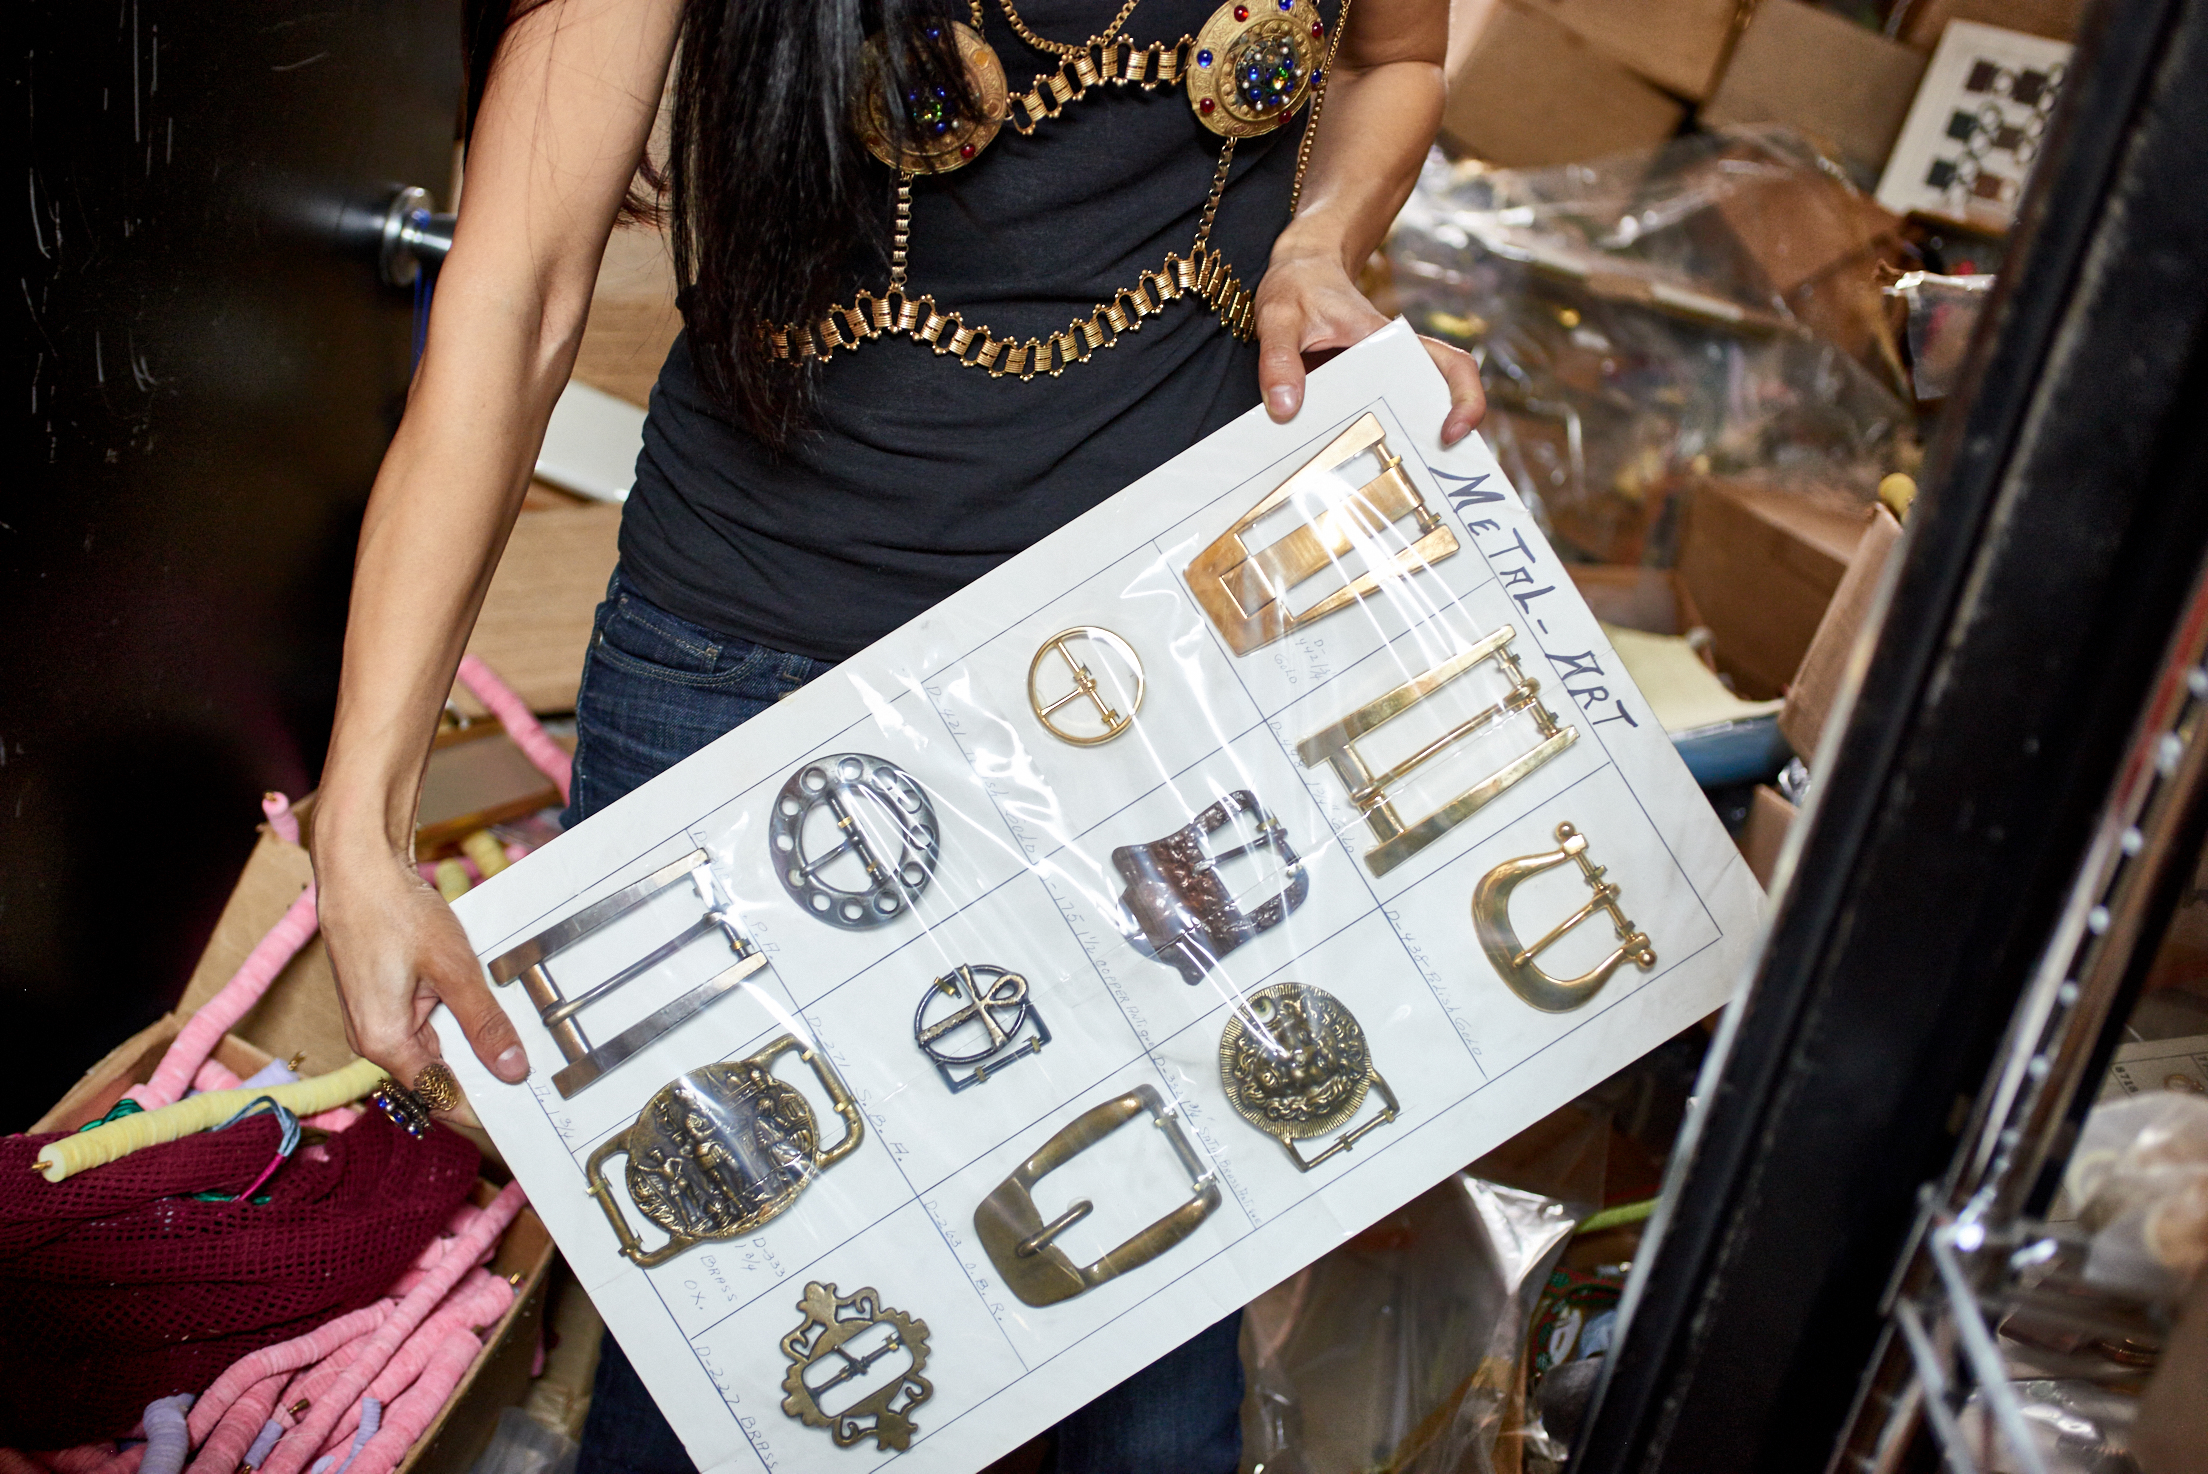 Elyse sold these vintage belt buckles for $3 each, totaling $2,000 in sales. Later on, she saw them being sold at a tradeshow for $200 each. Elyse wanted increase the price but her father told her not to. As long as everyone is happy and believes they are getting a deal, everyone wins.